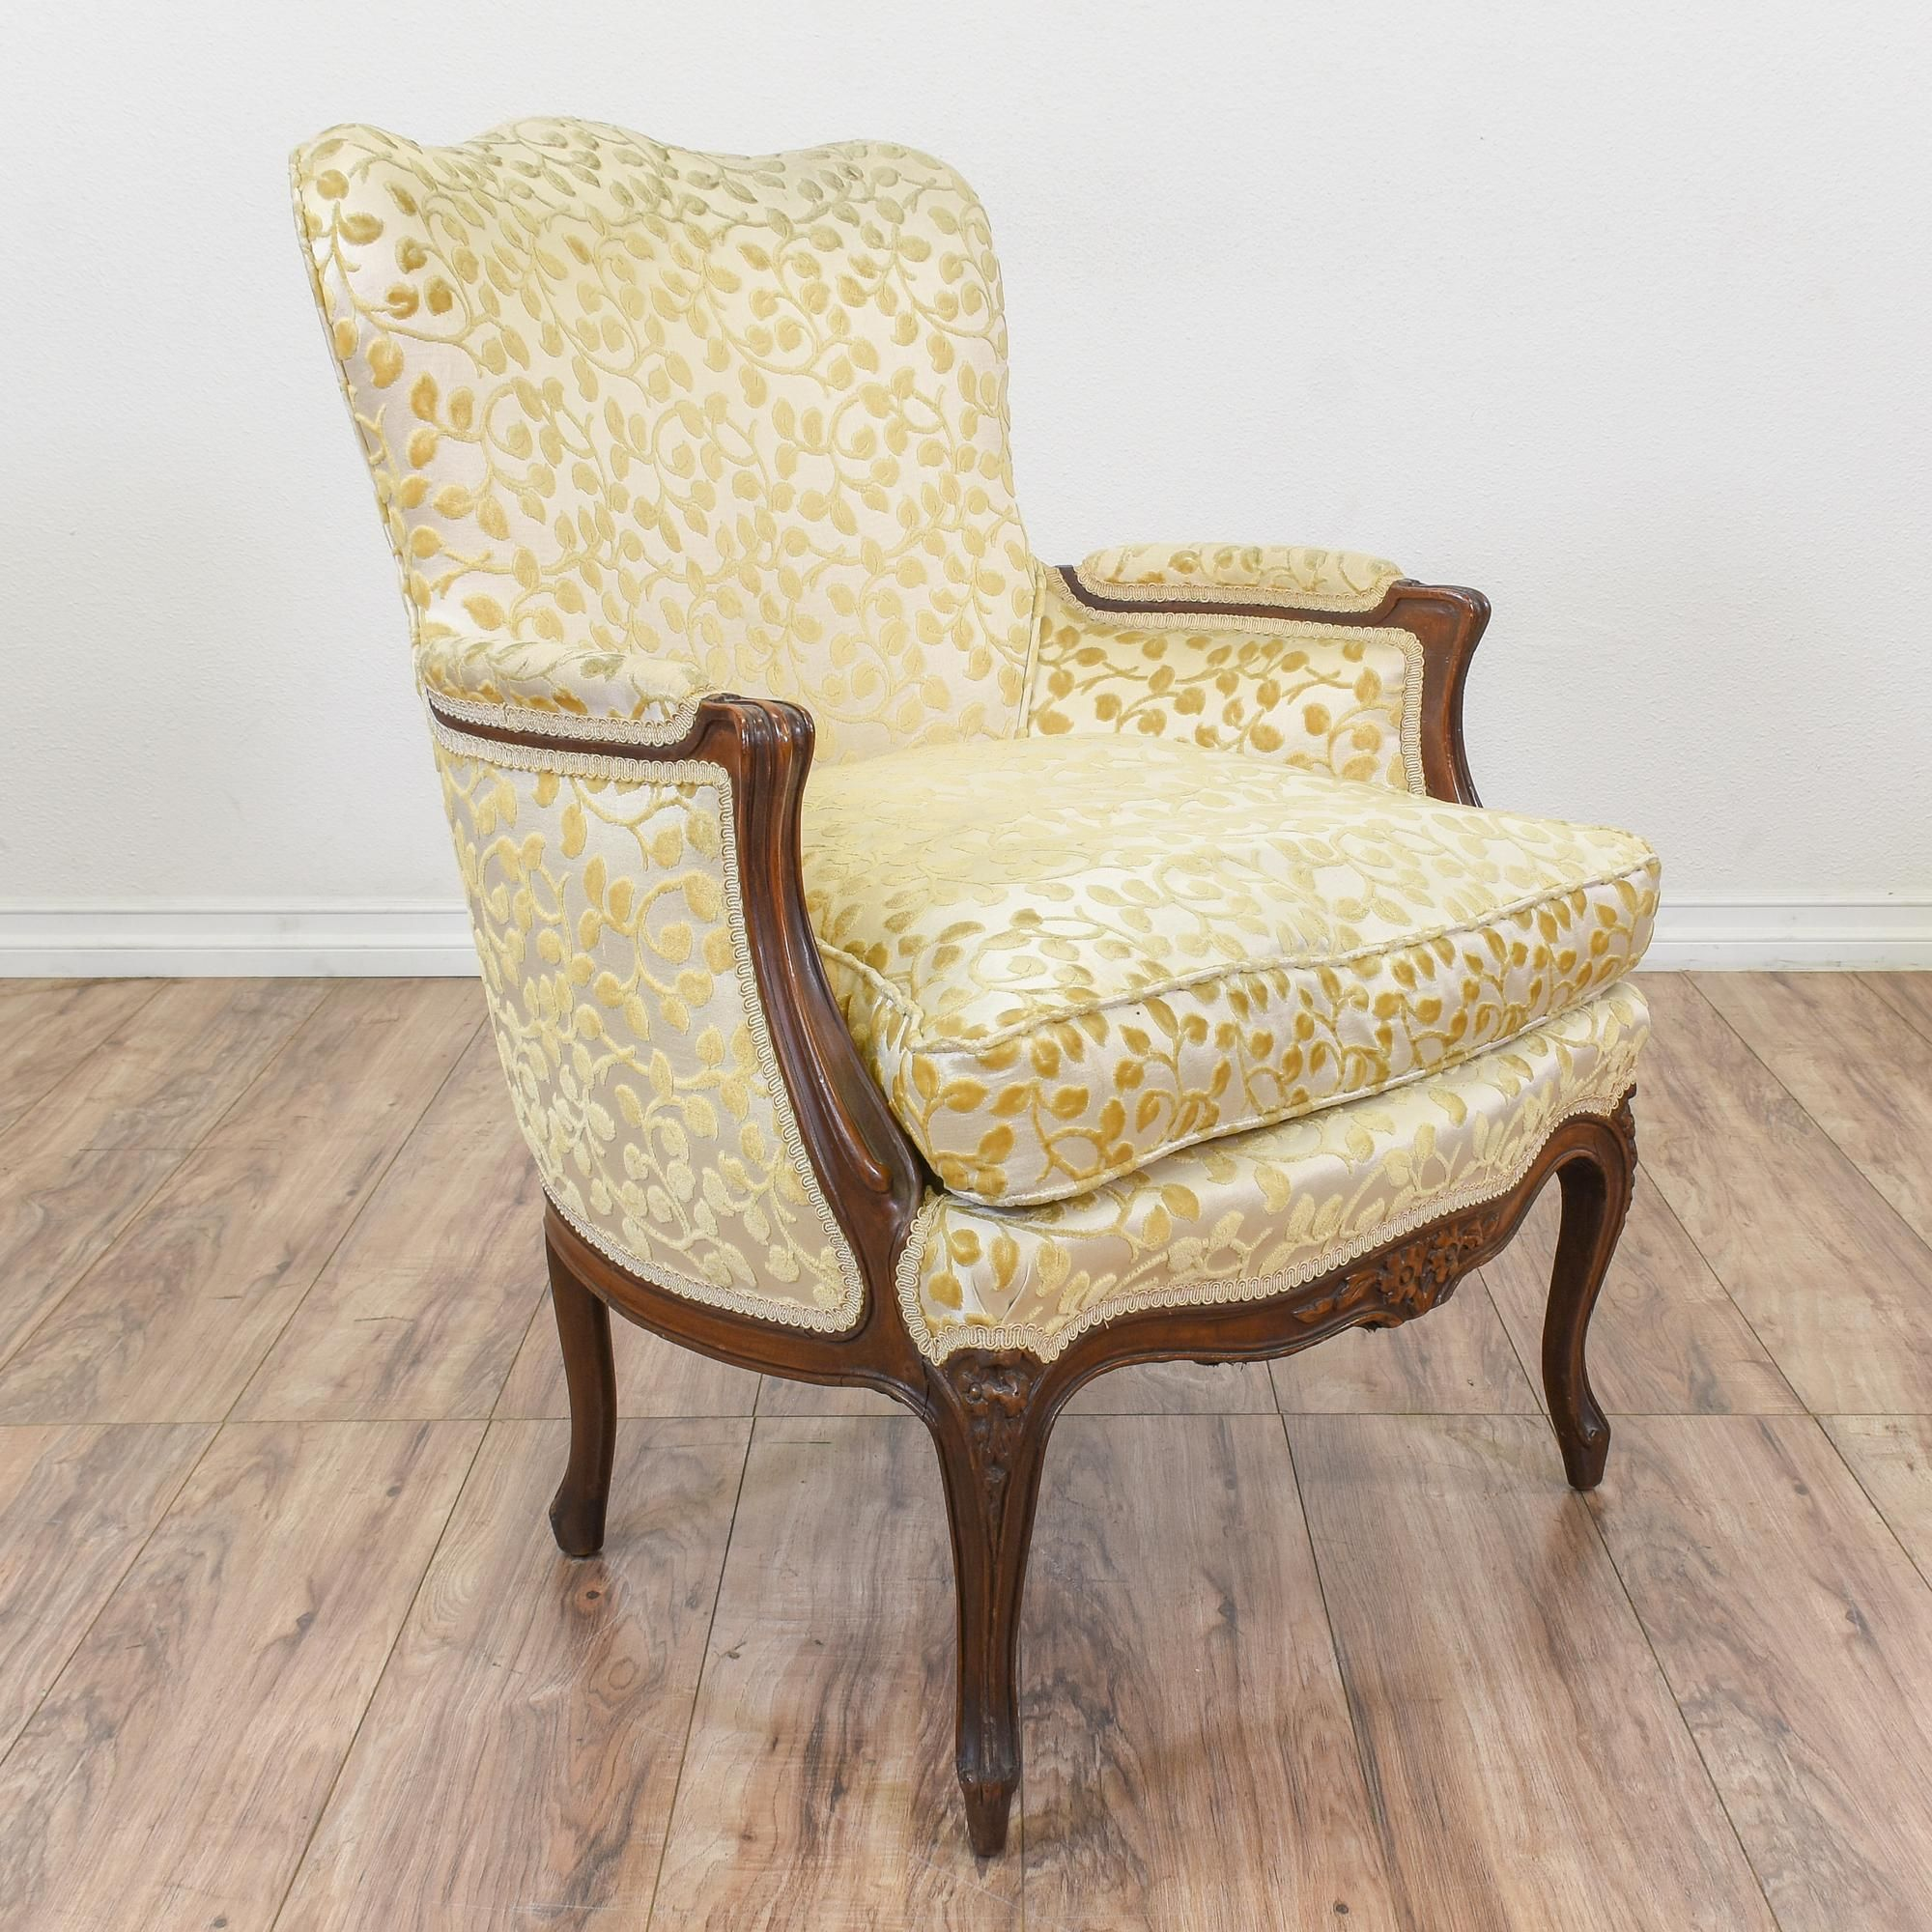 This bergere chair is upholstered in a durable off white cream